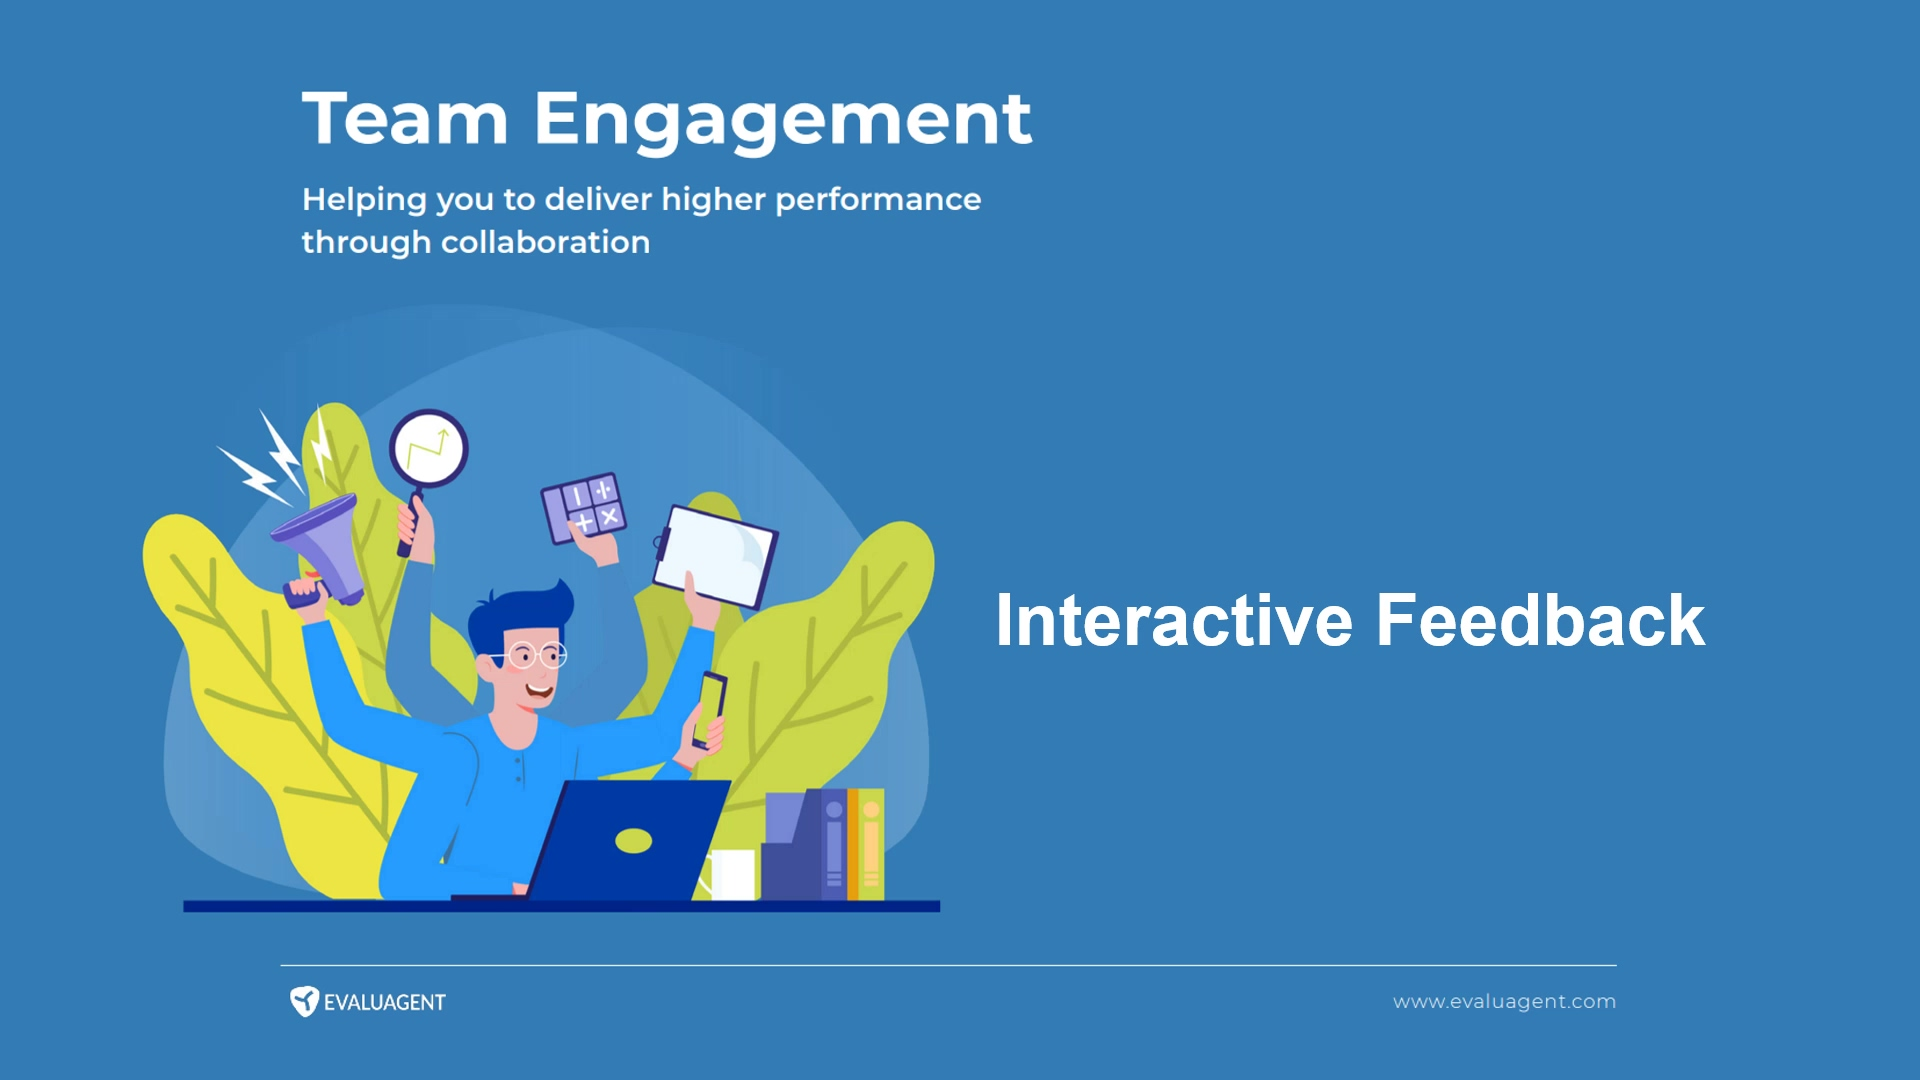 Team Engagement - Interactive Feedback